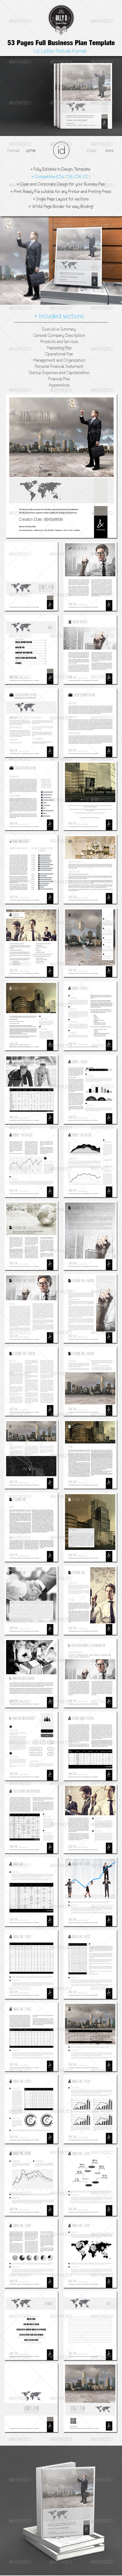 GraphicRiver 53 Pages Full Business Plan Template U.S Letter 8737118